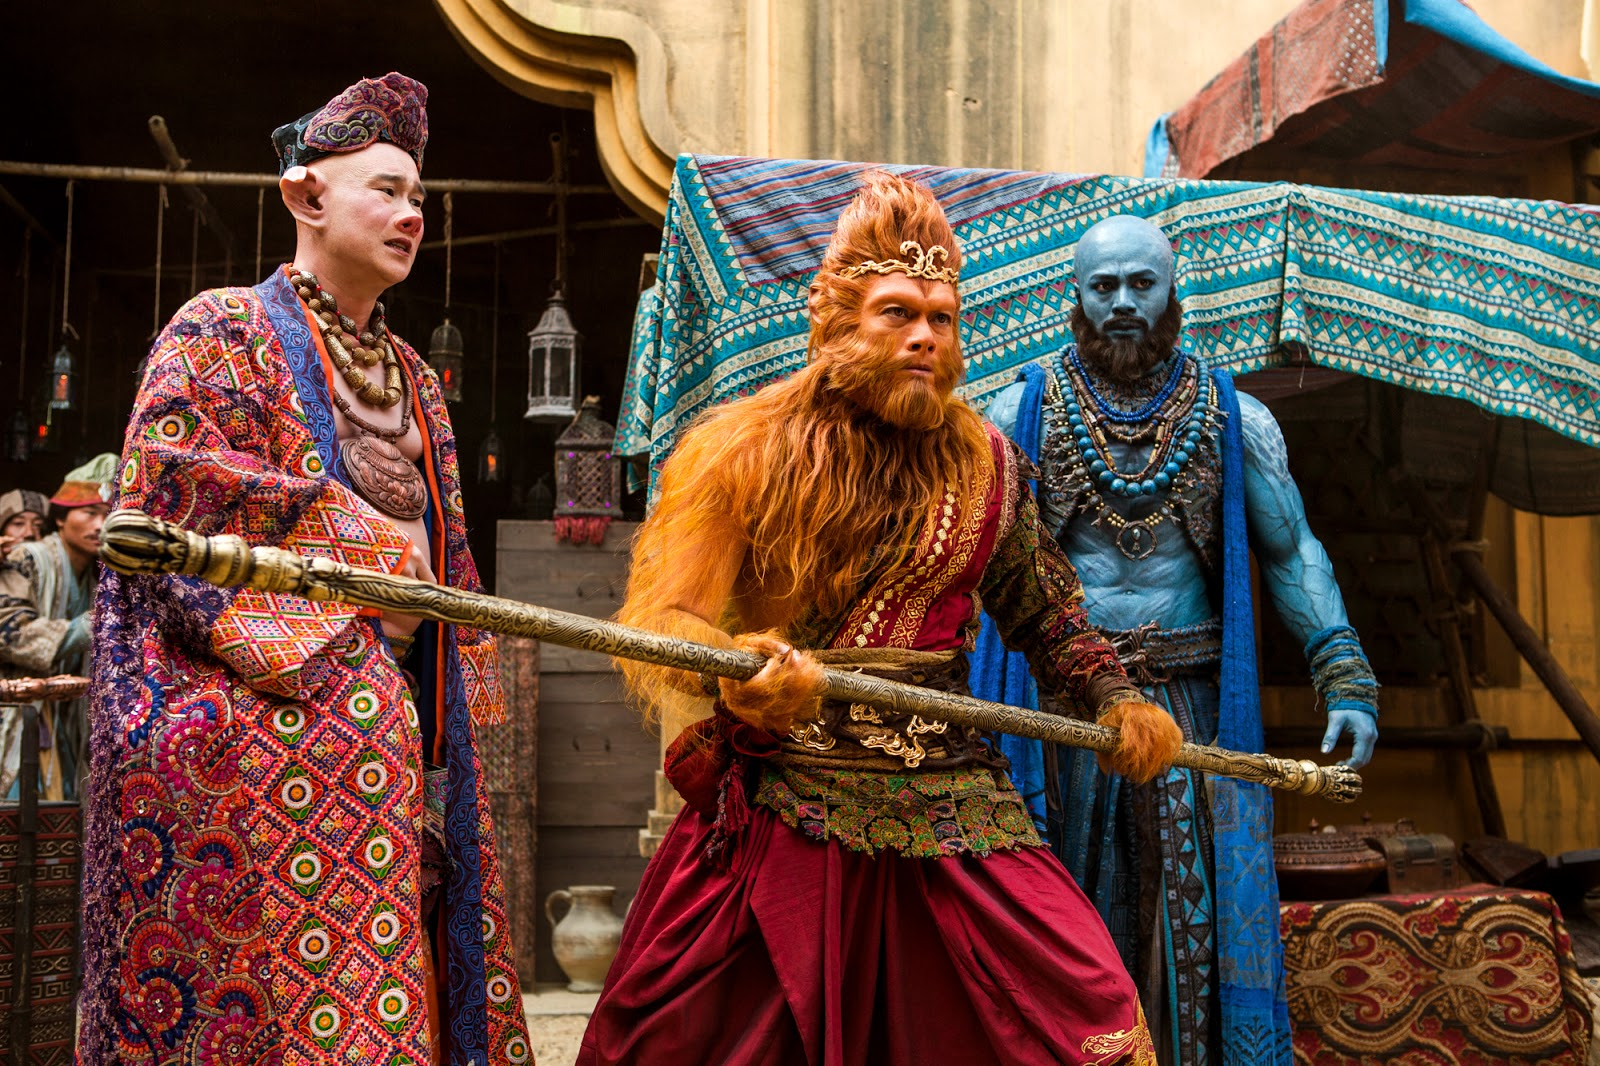 (l to r) Bajie (Xiao Shen Yang, Sun Wukong (Aaron Kwok) and Sha Wujung (Him Law) in The Monkey King 2 (2016)